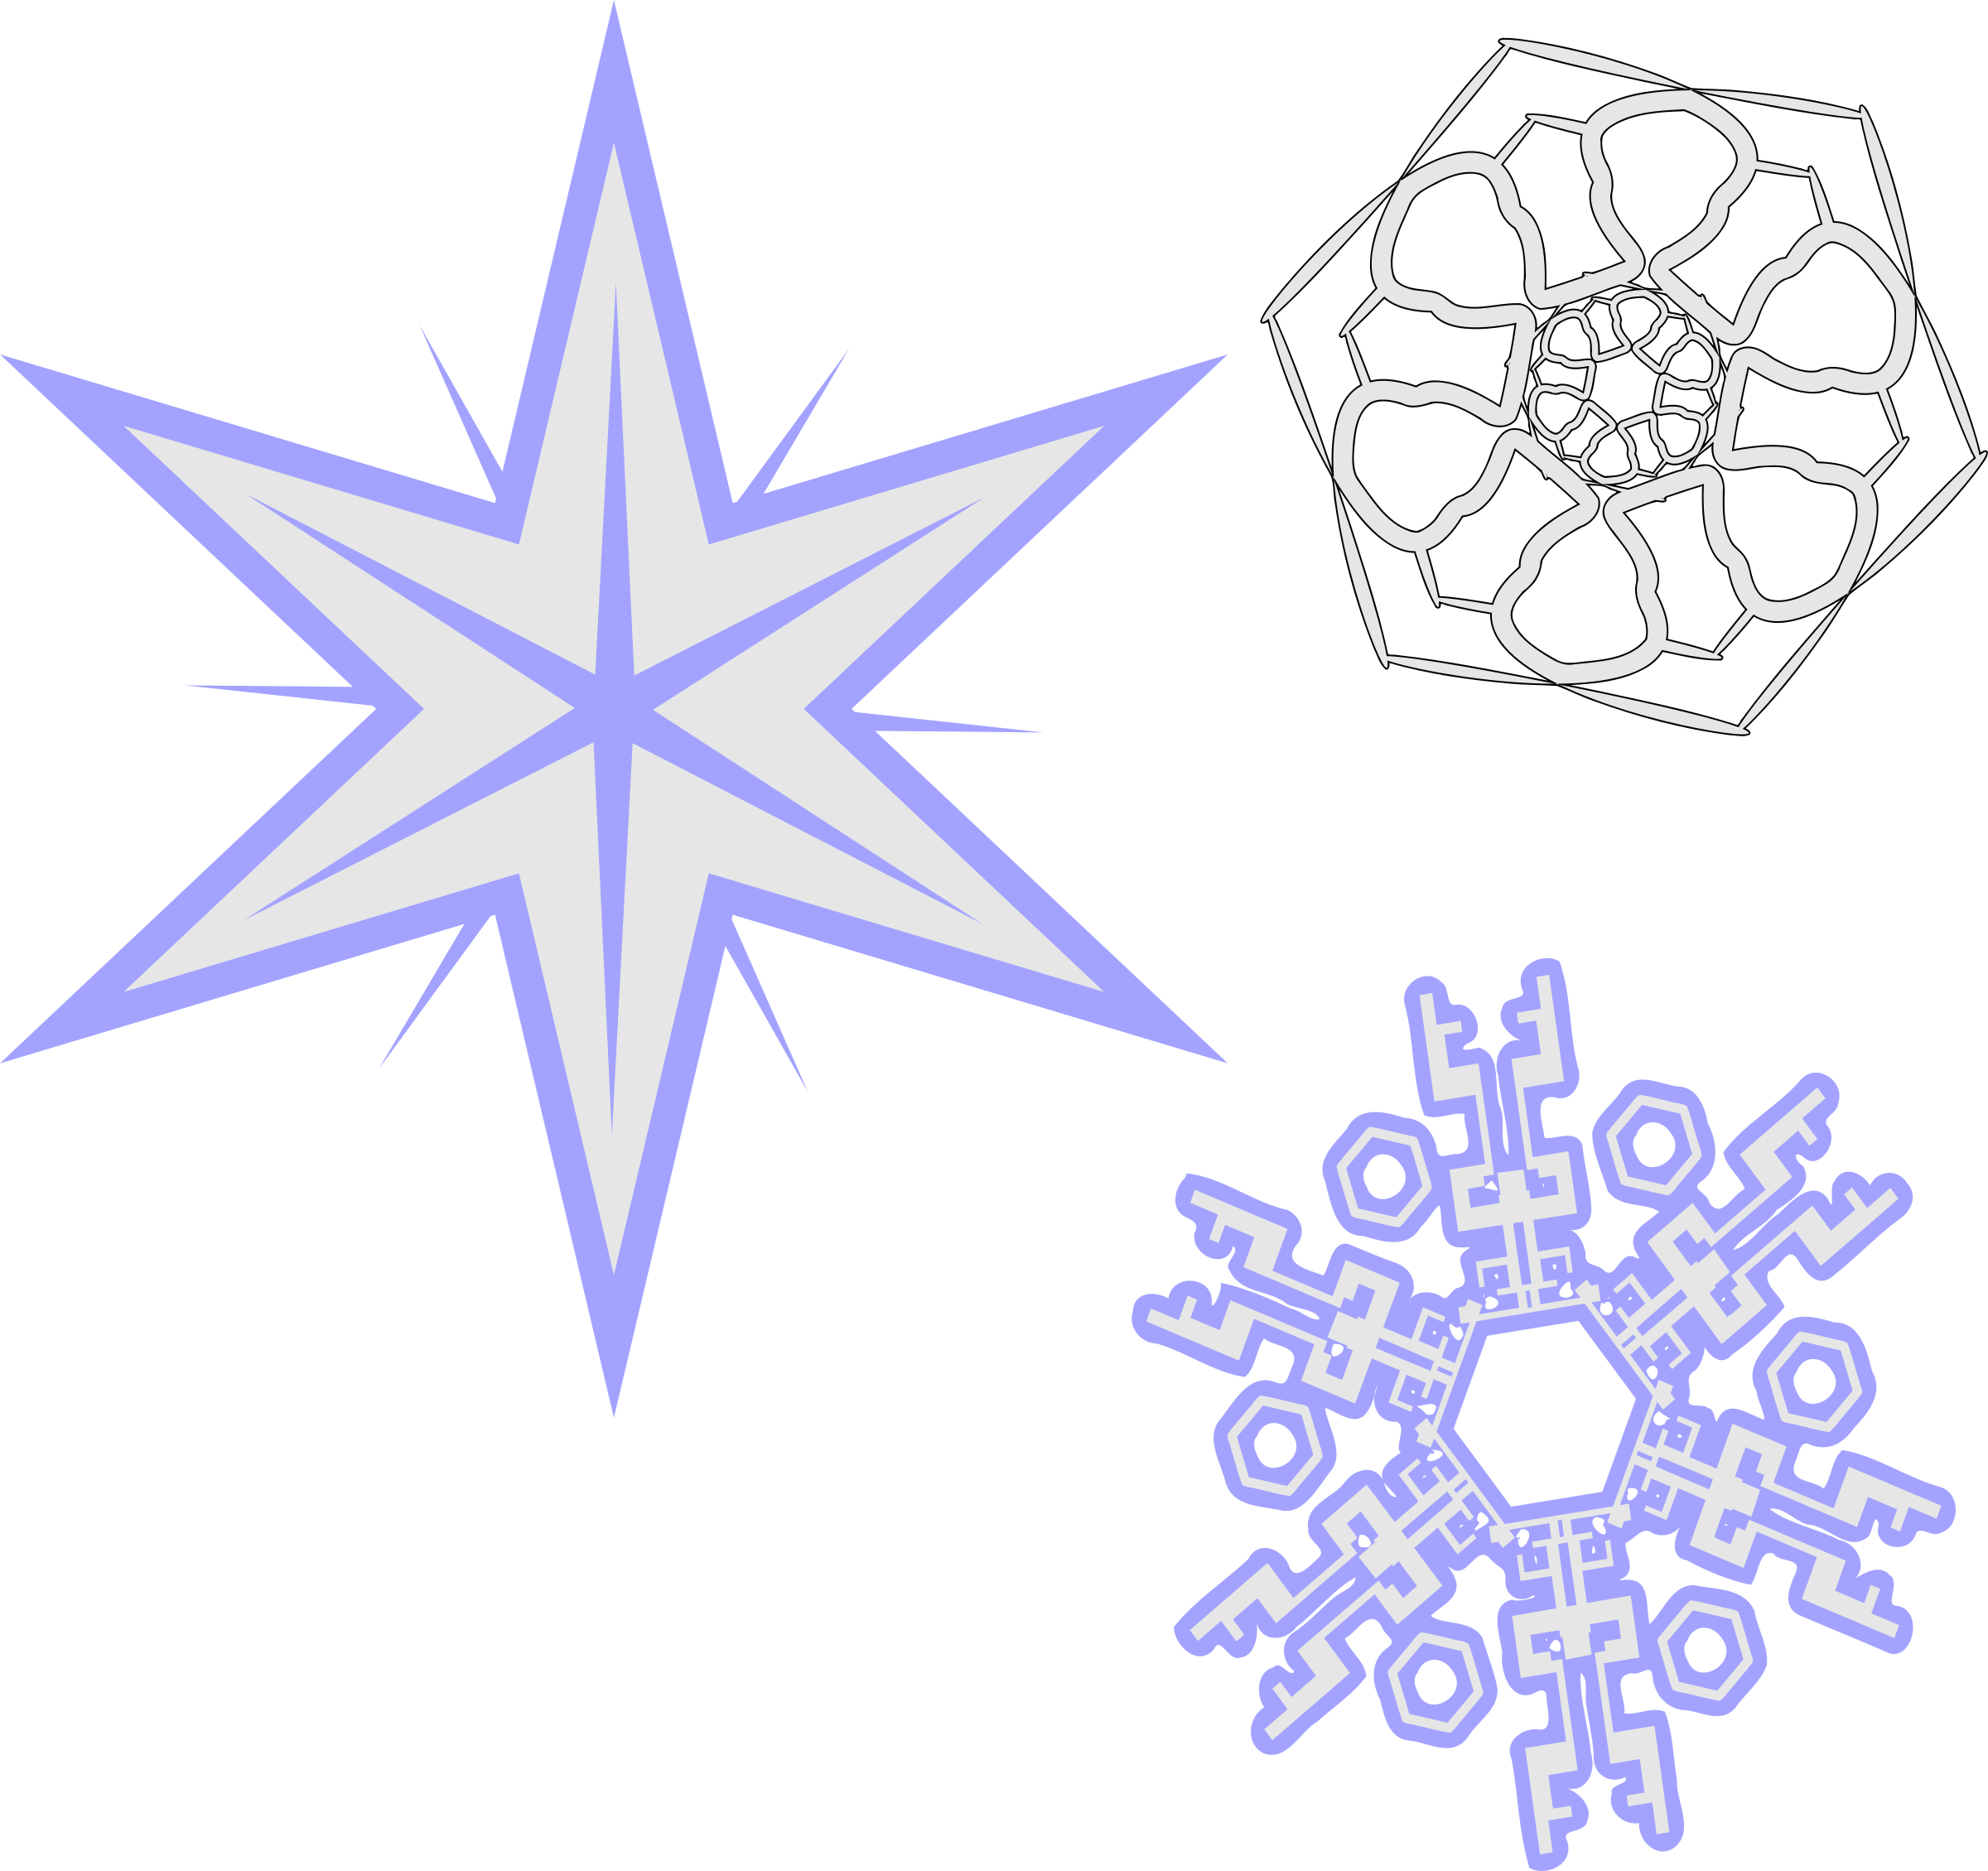 Snowflakes Png image #41279